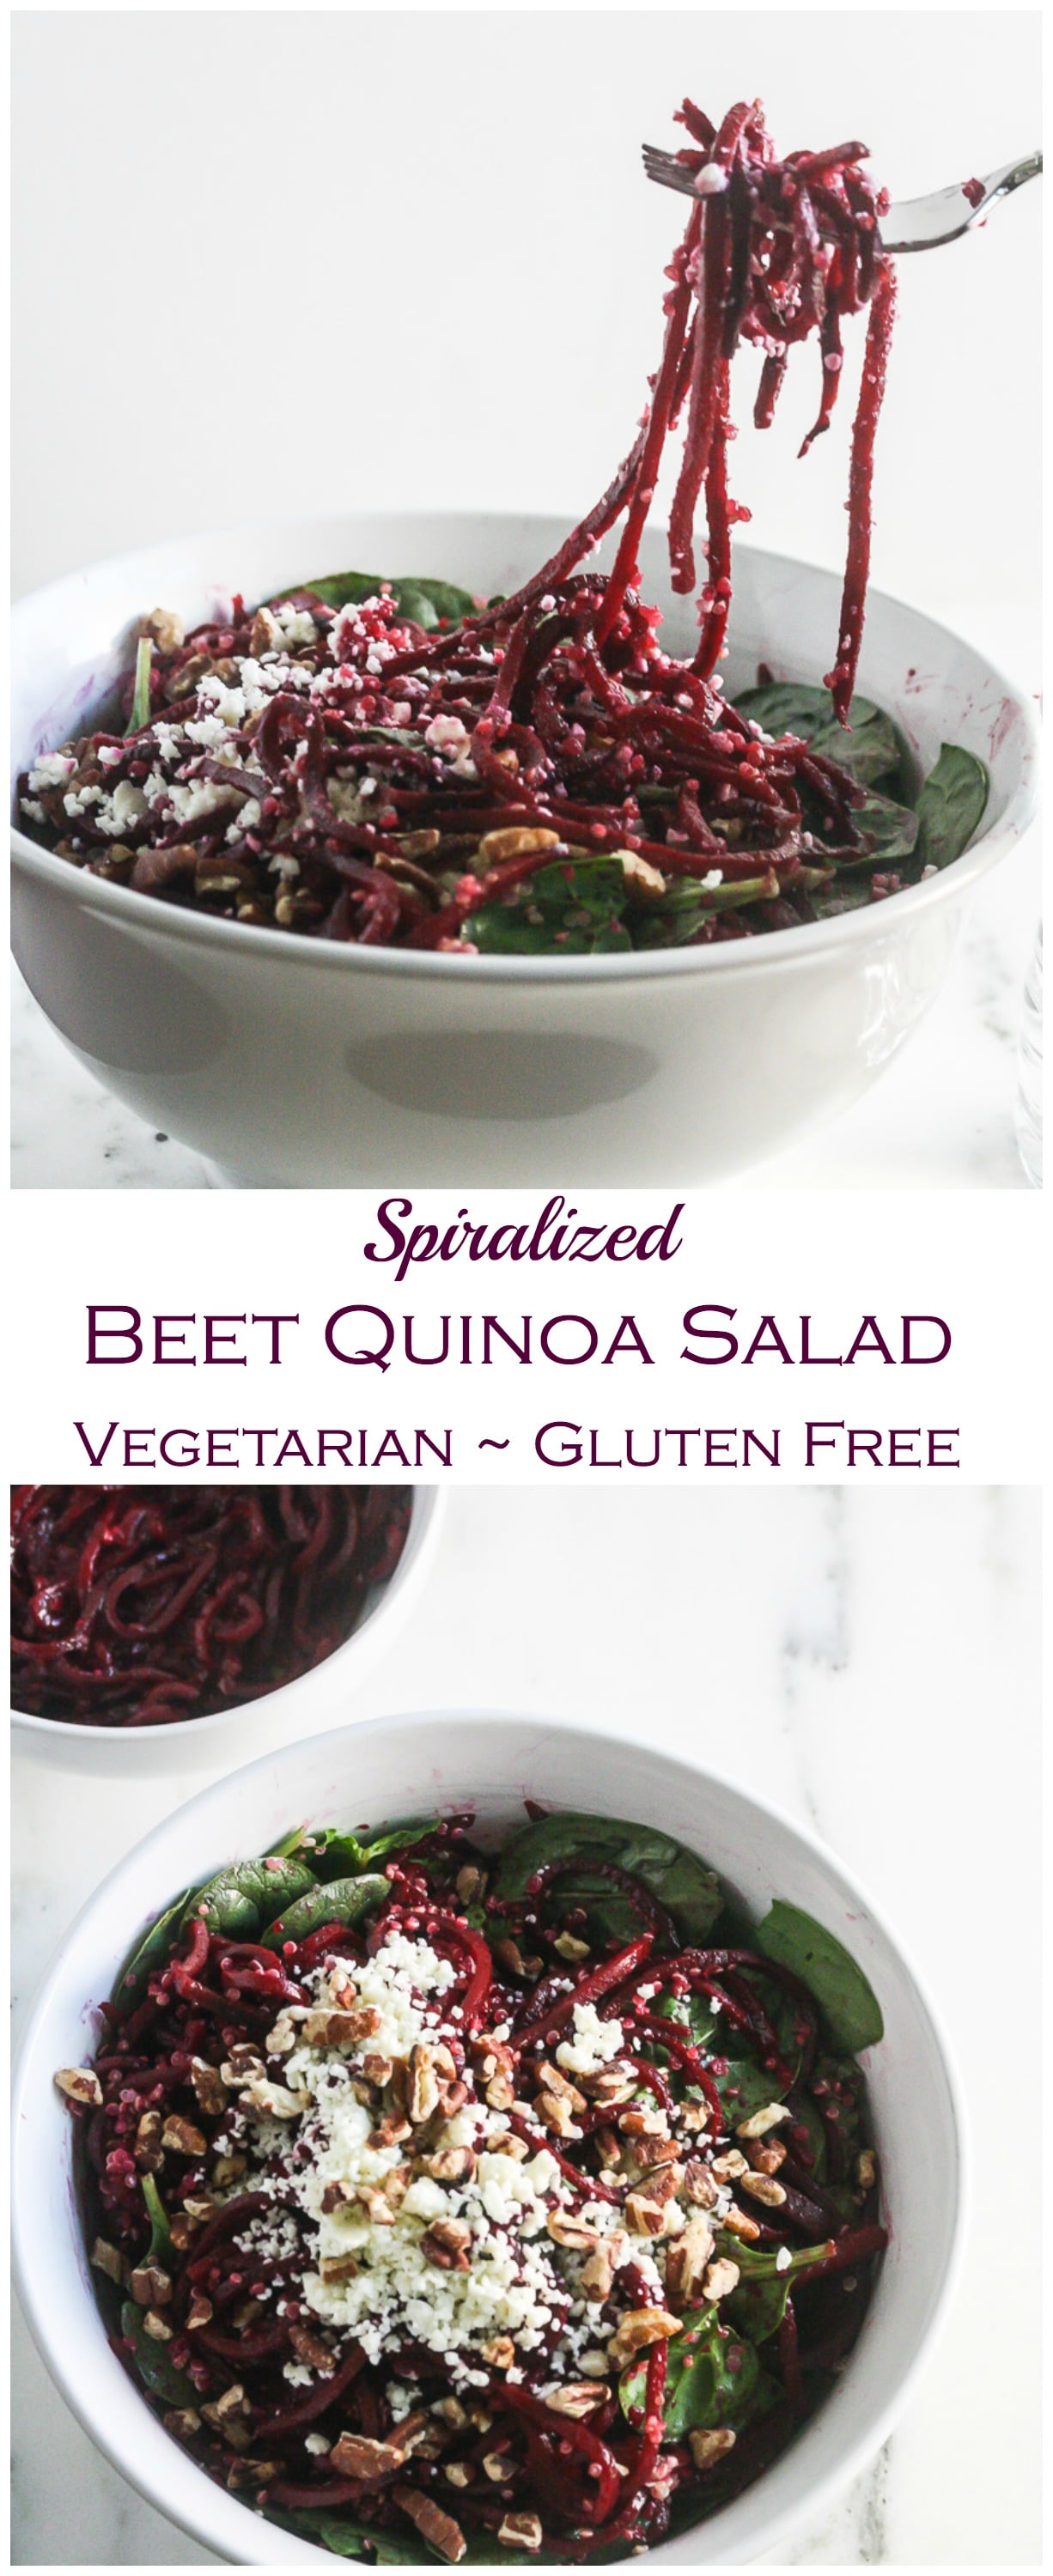 This Spiraled Beet Quinoa Salad is made with wholesome ingredients and is packed with protein, vitamins and minerals! From Lauren Kelly Nutrition